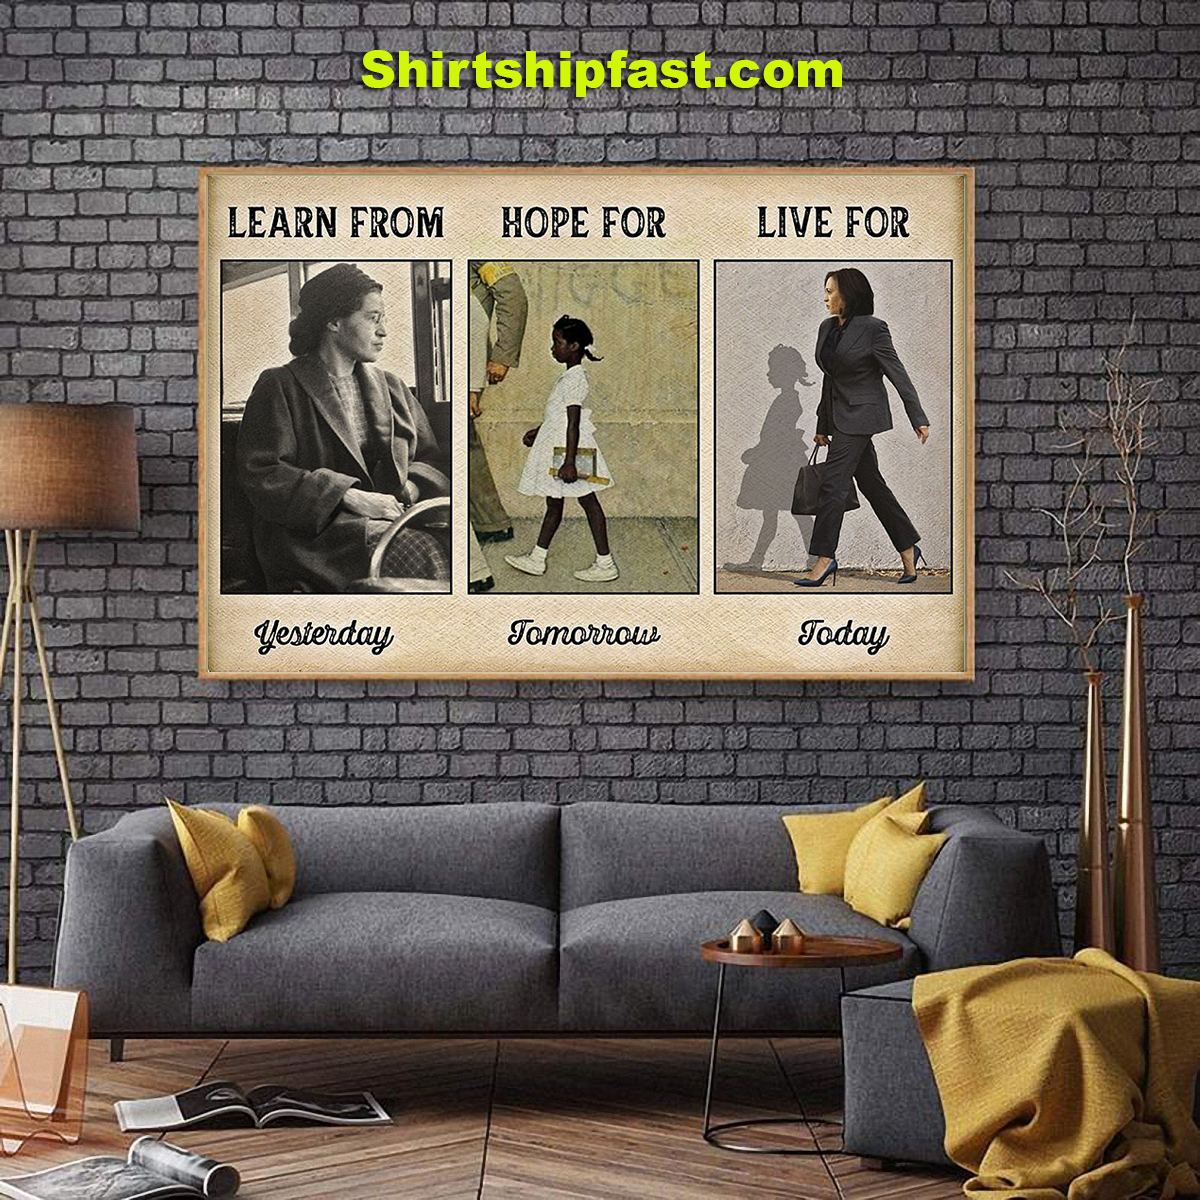 Learn from yesterday hope for tomorrow live for today poster - Picture 2